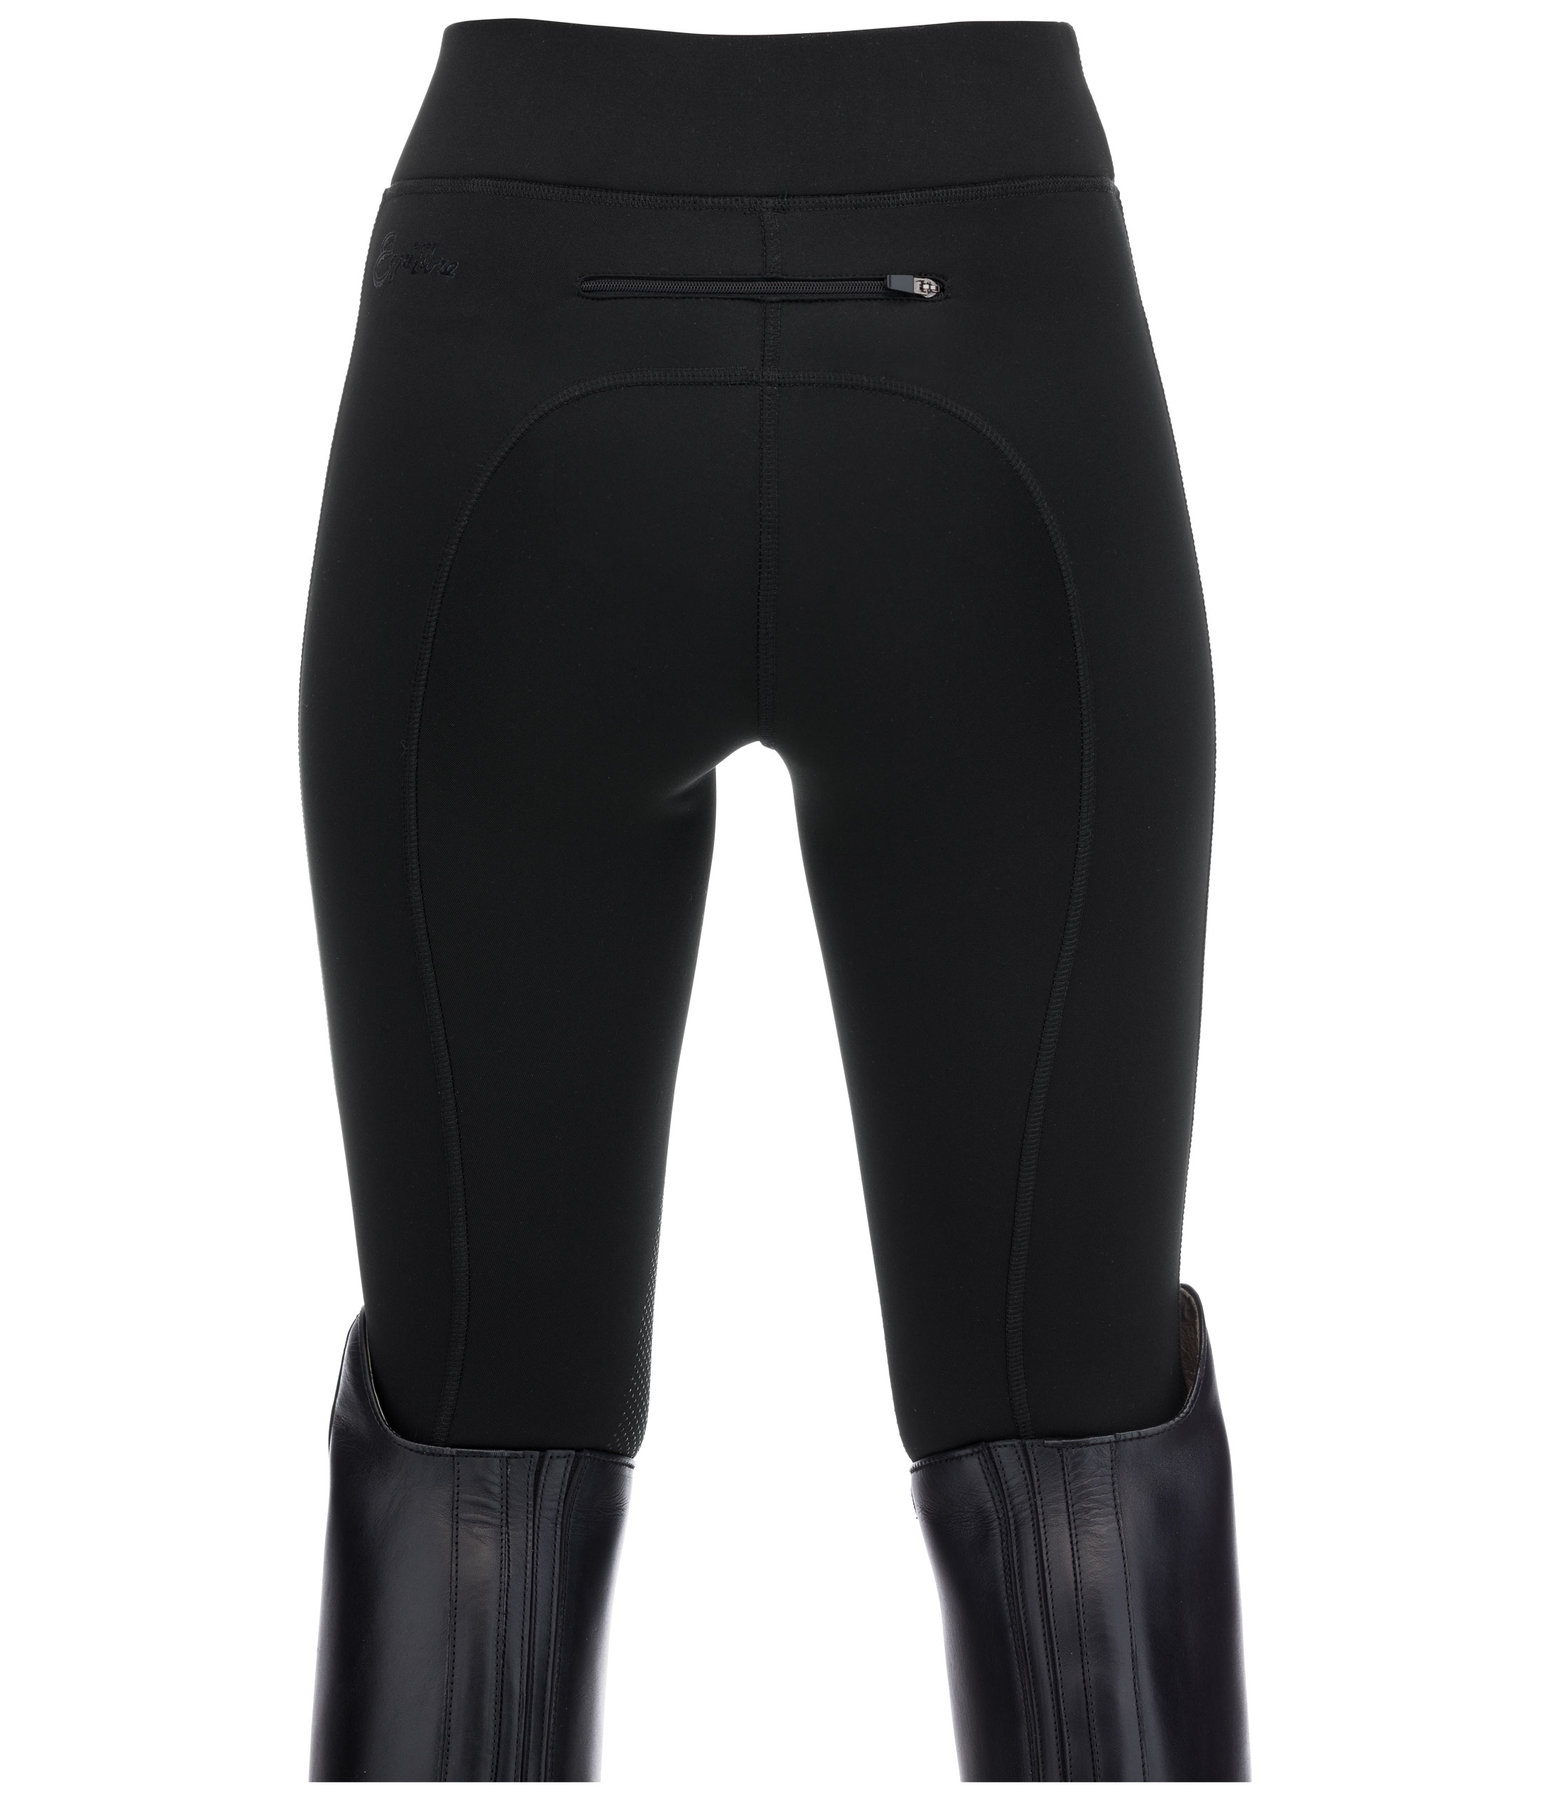 Kinder-Thermo-Kniebesatzreitleggings Elia